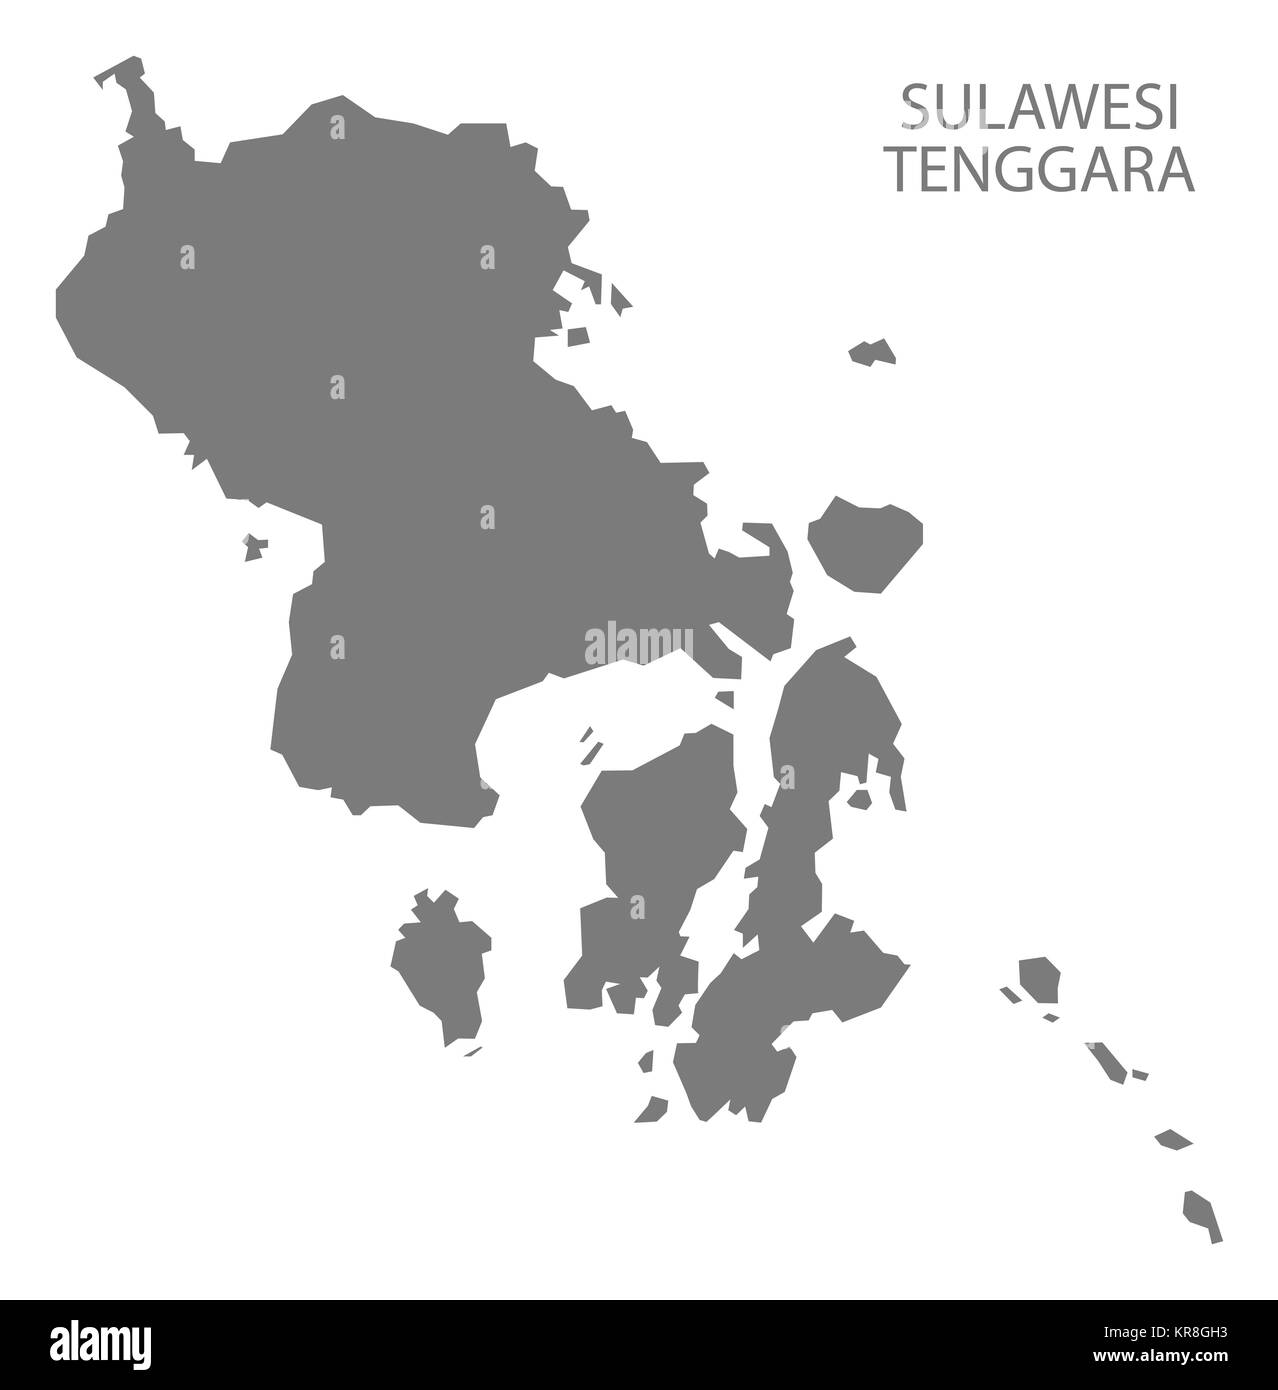 Sulawesi Tenggara Indonesia Map grey - Stock Image